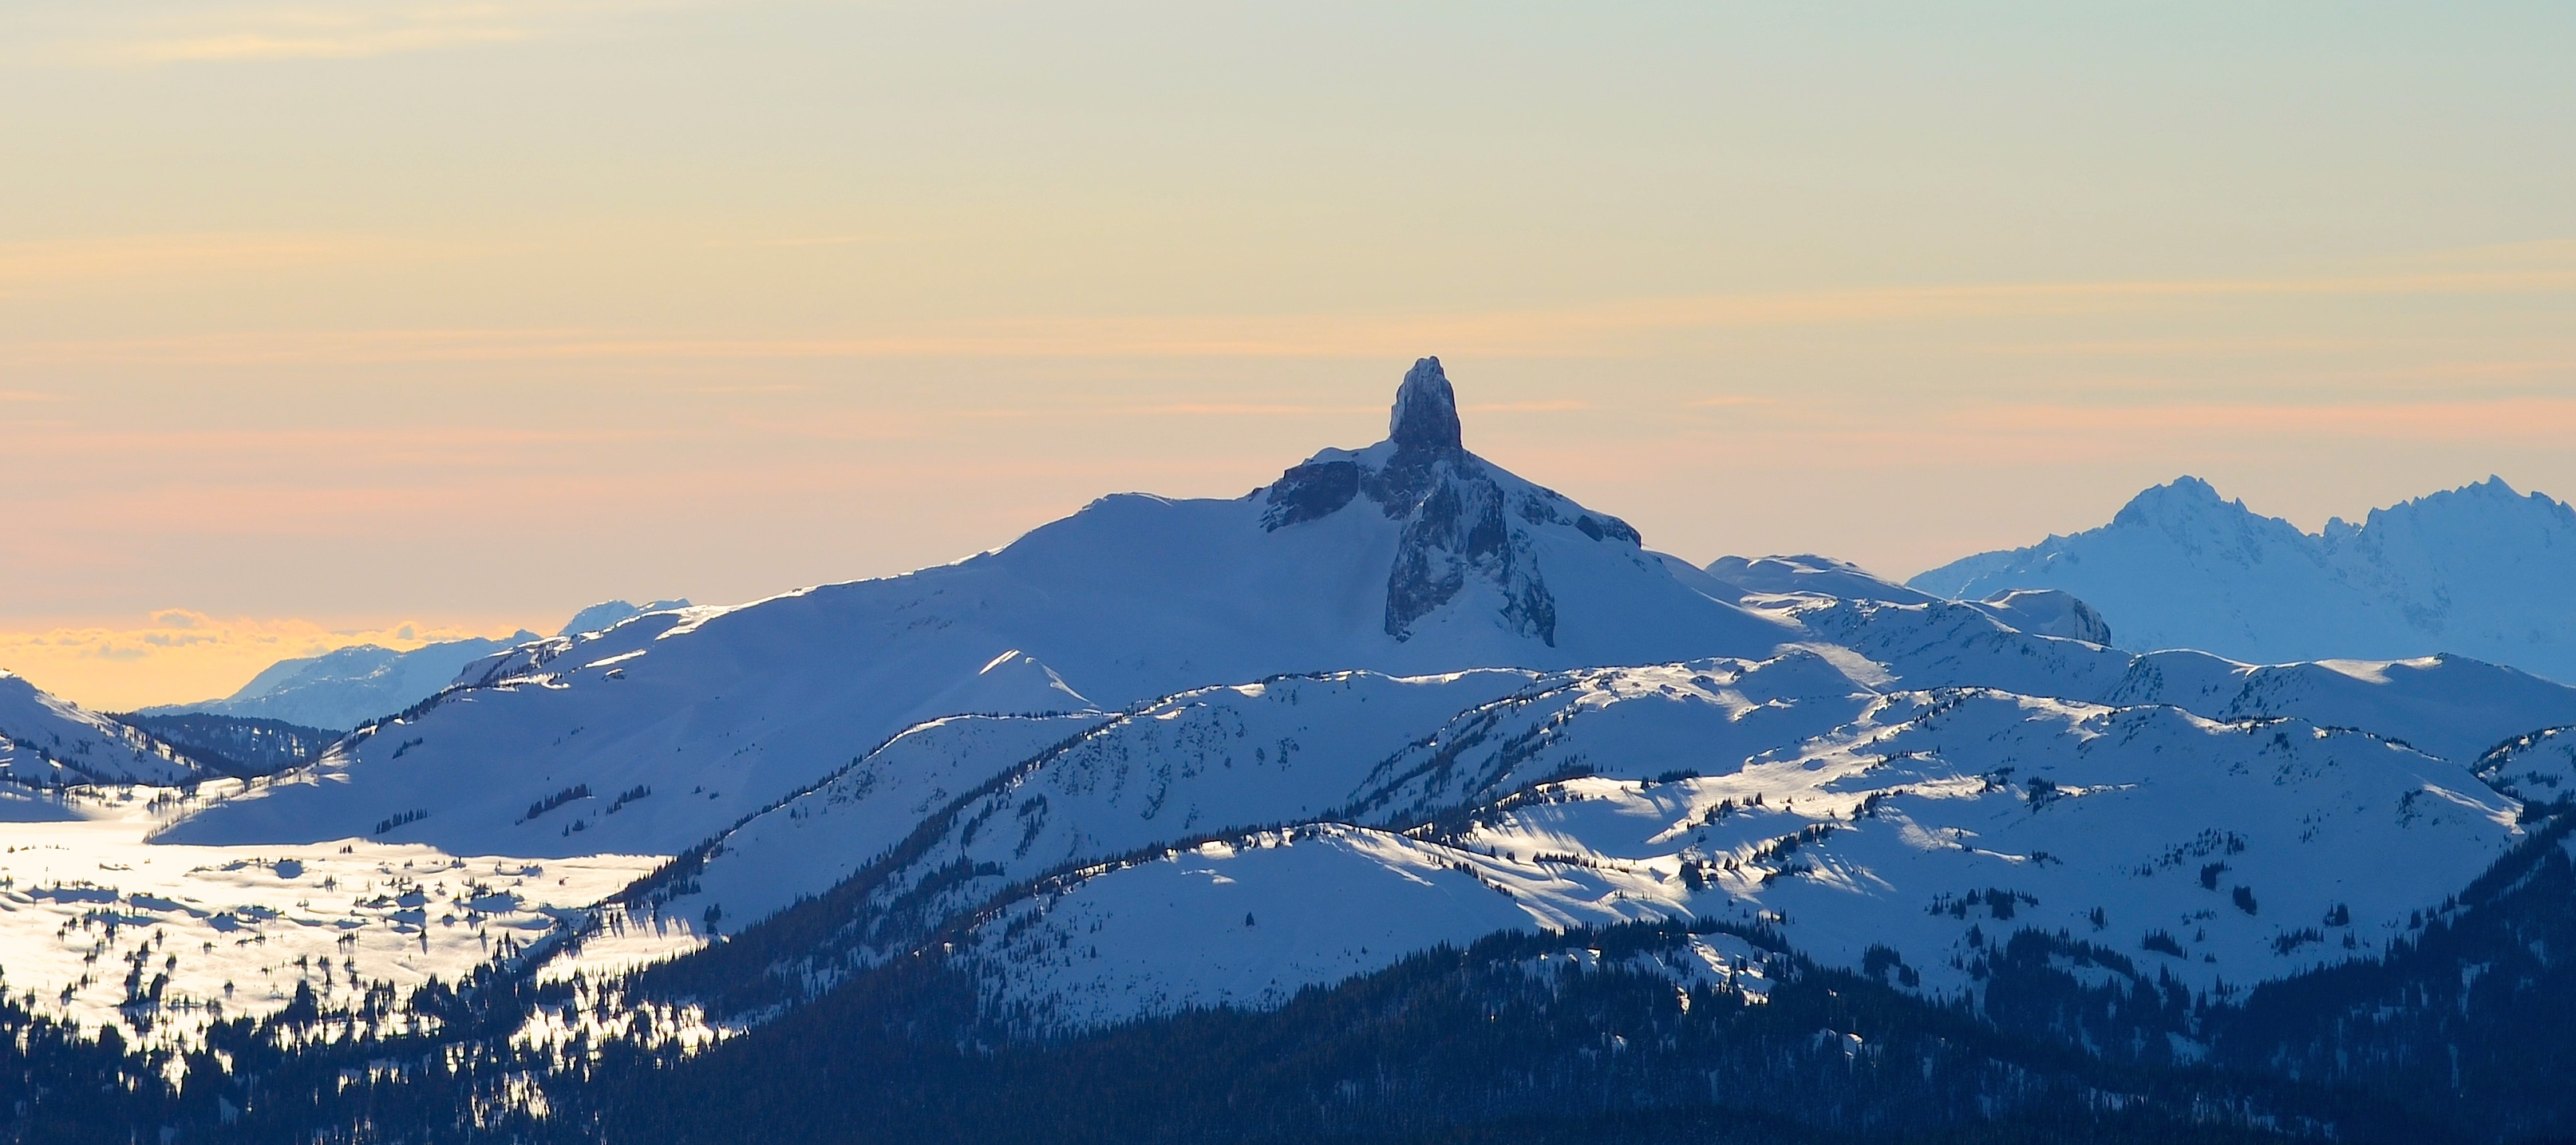 black tusk mountain - photo #4